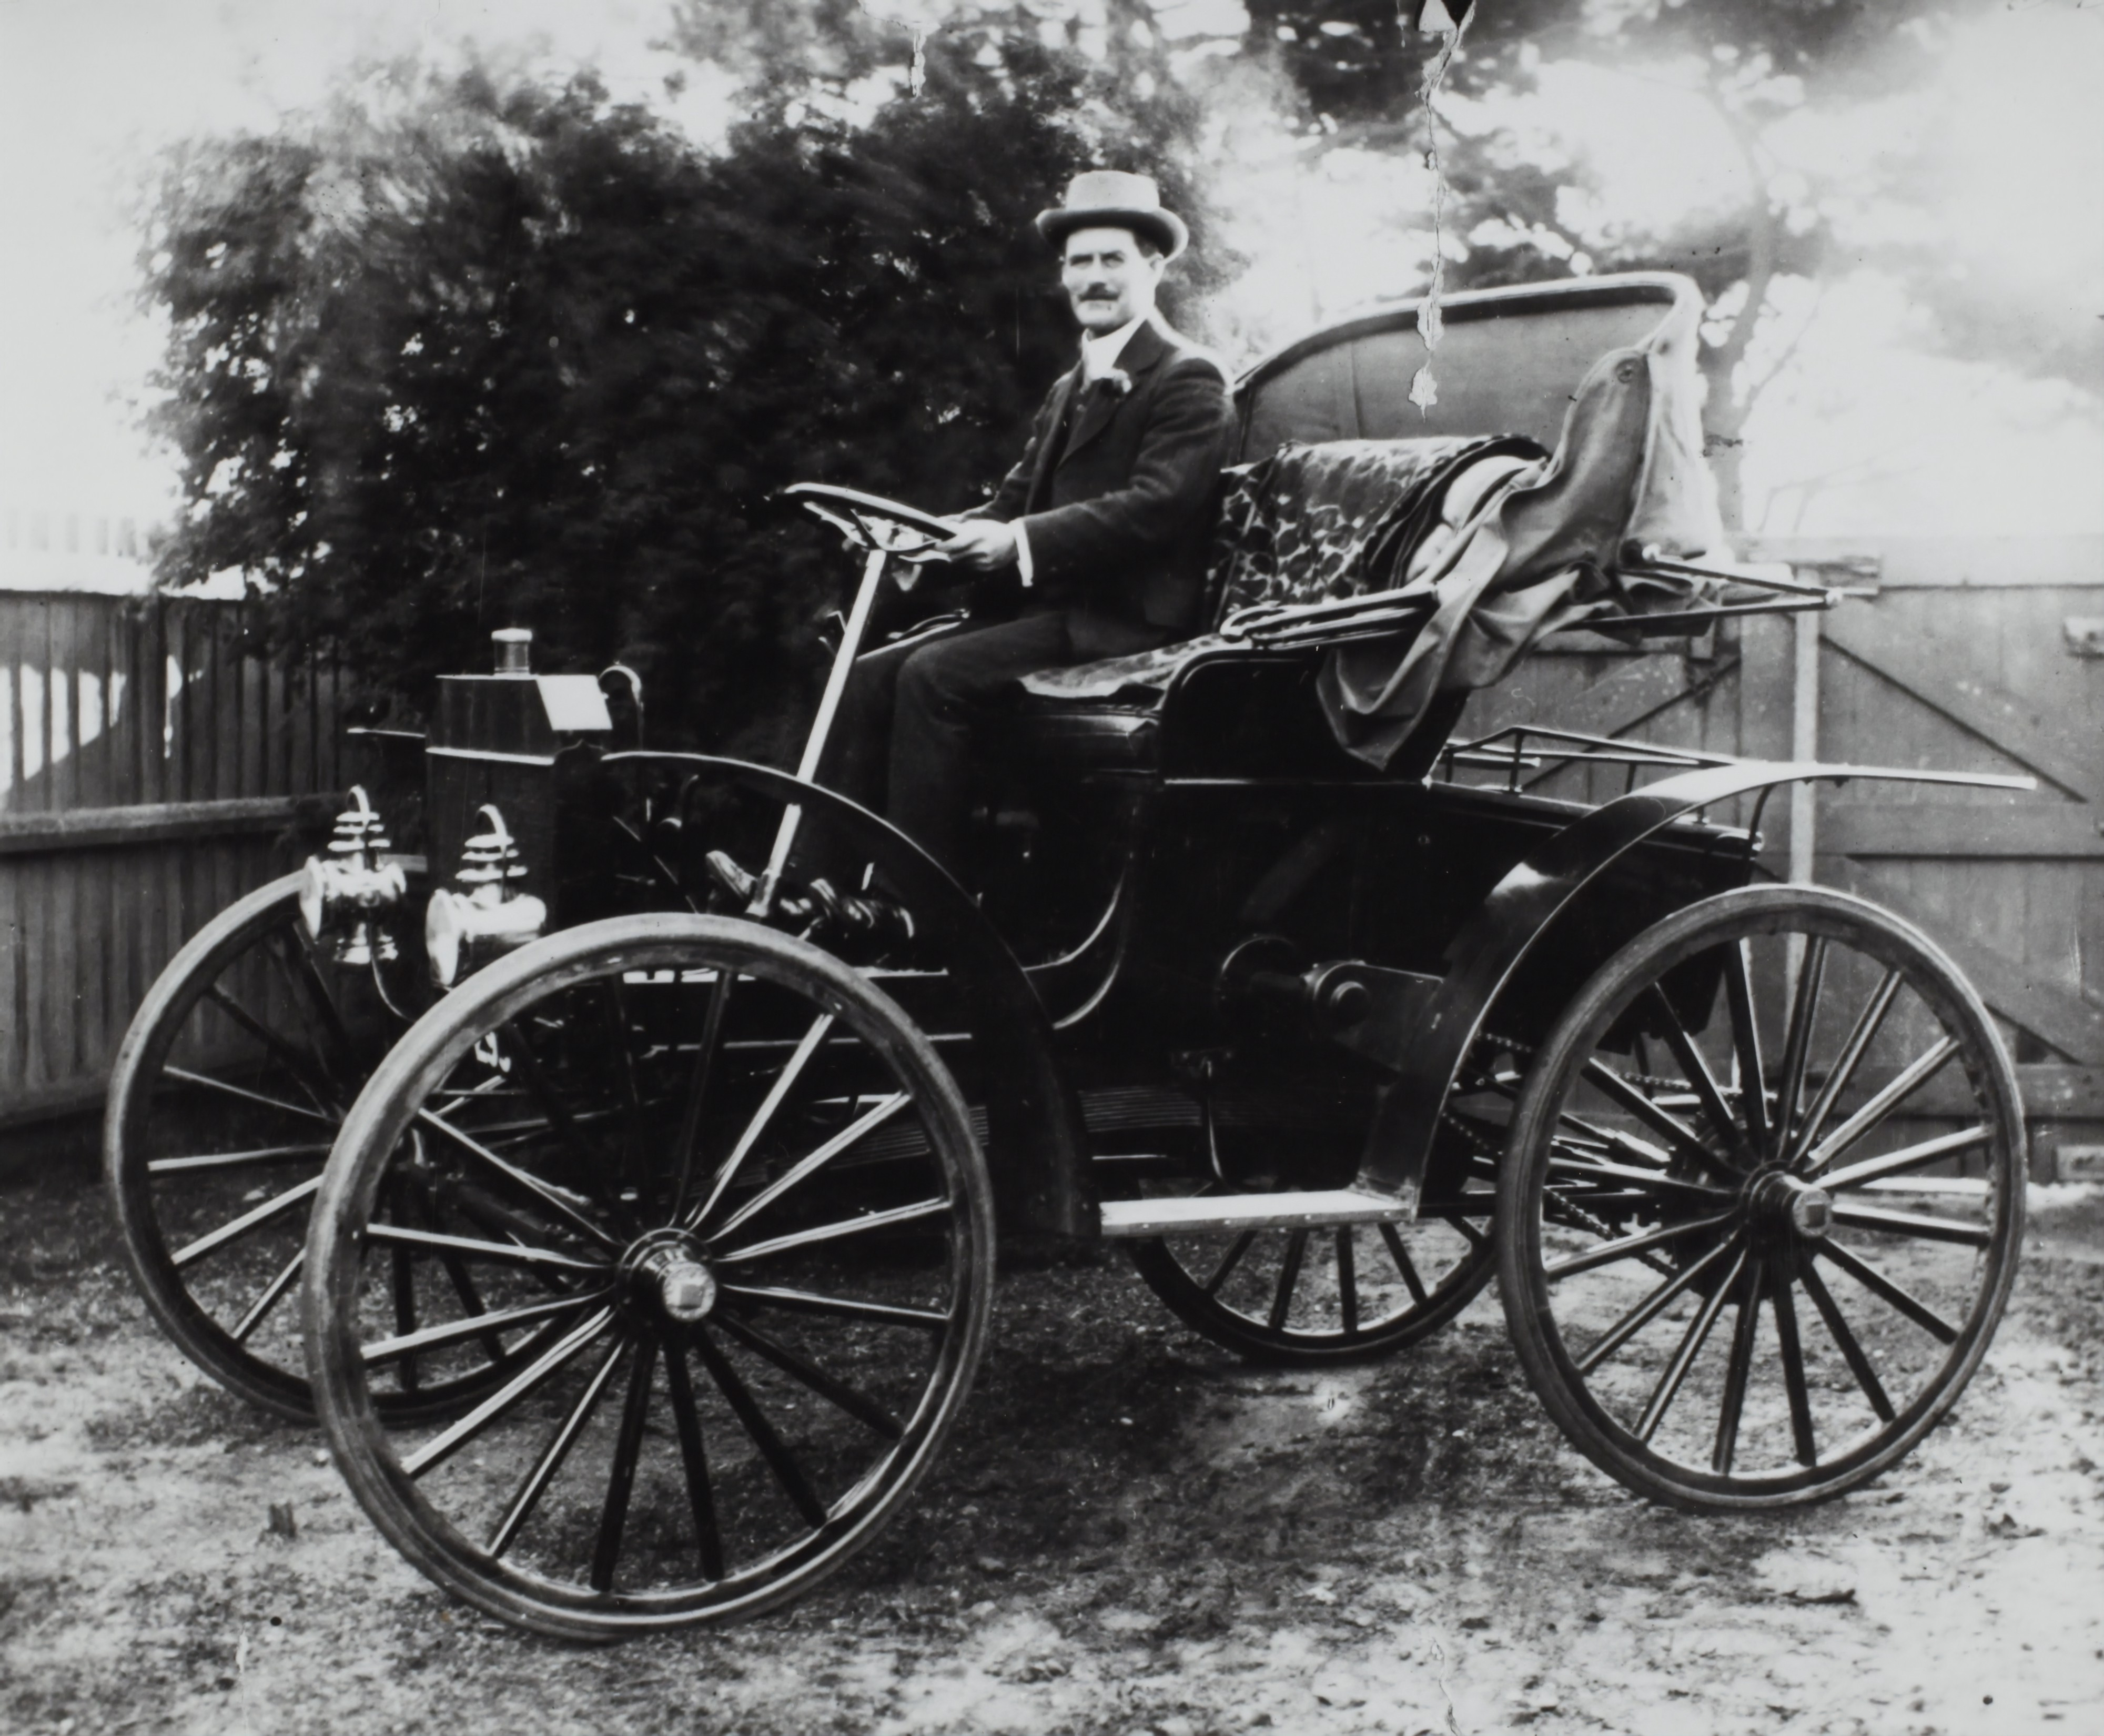 An original horseless carriage in black and white with a man in a hat sitting in the driver's seat